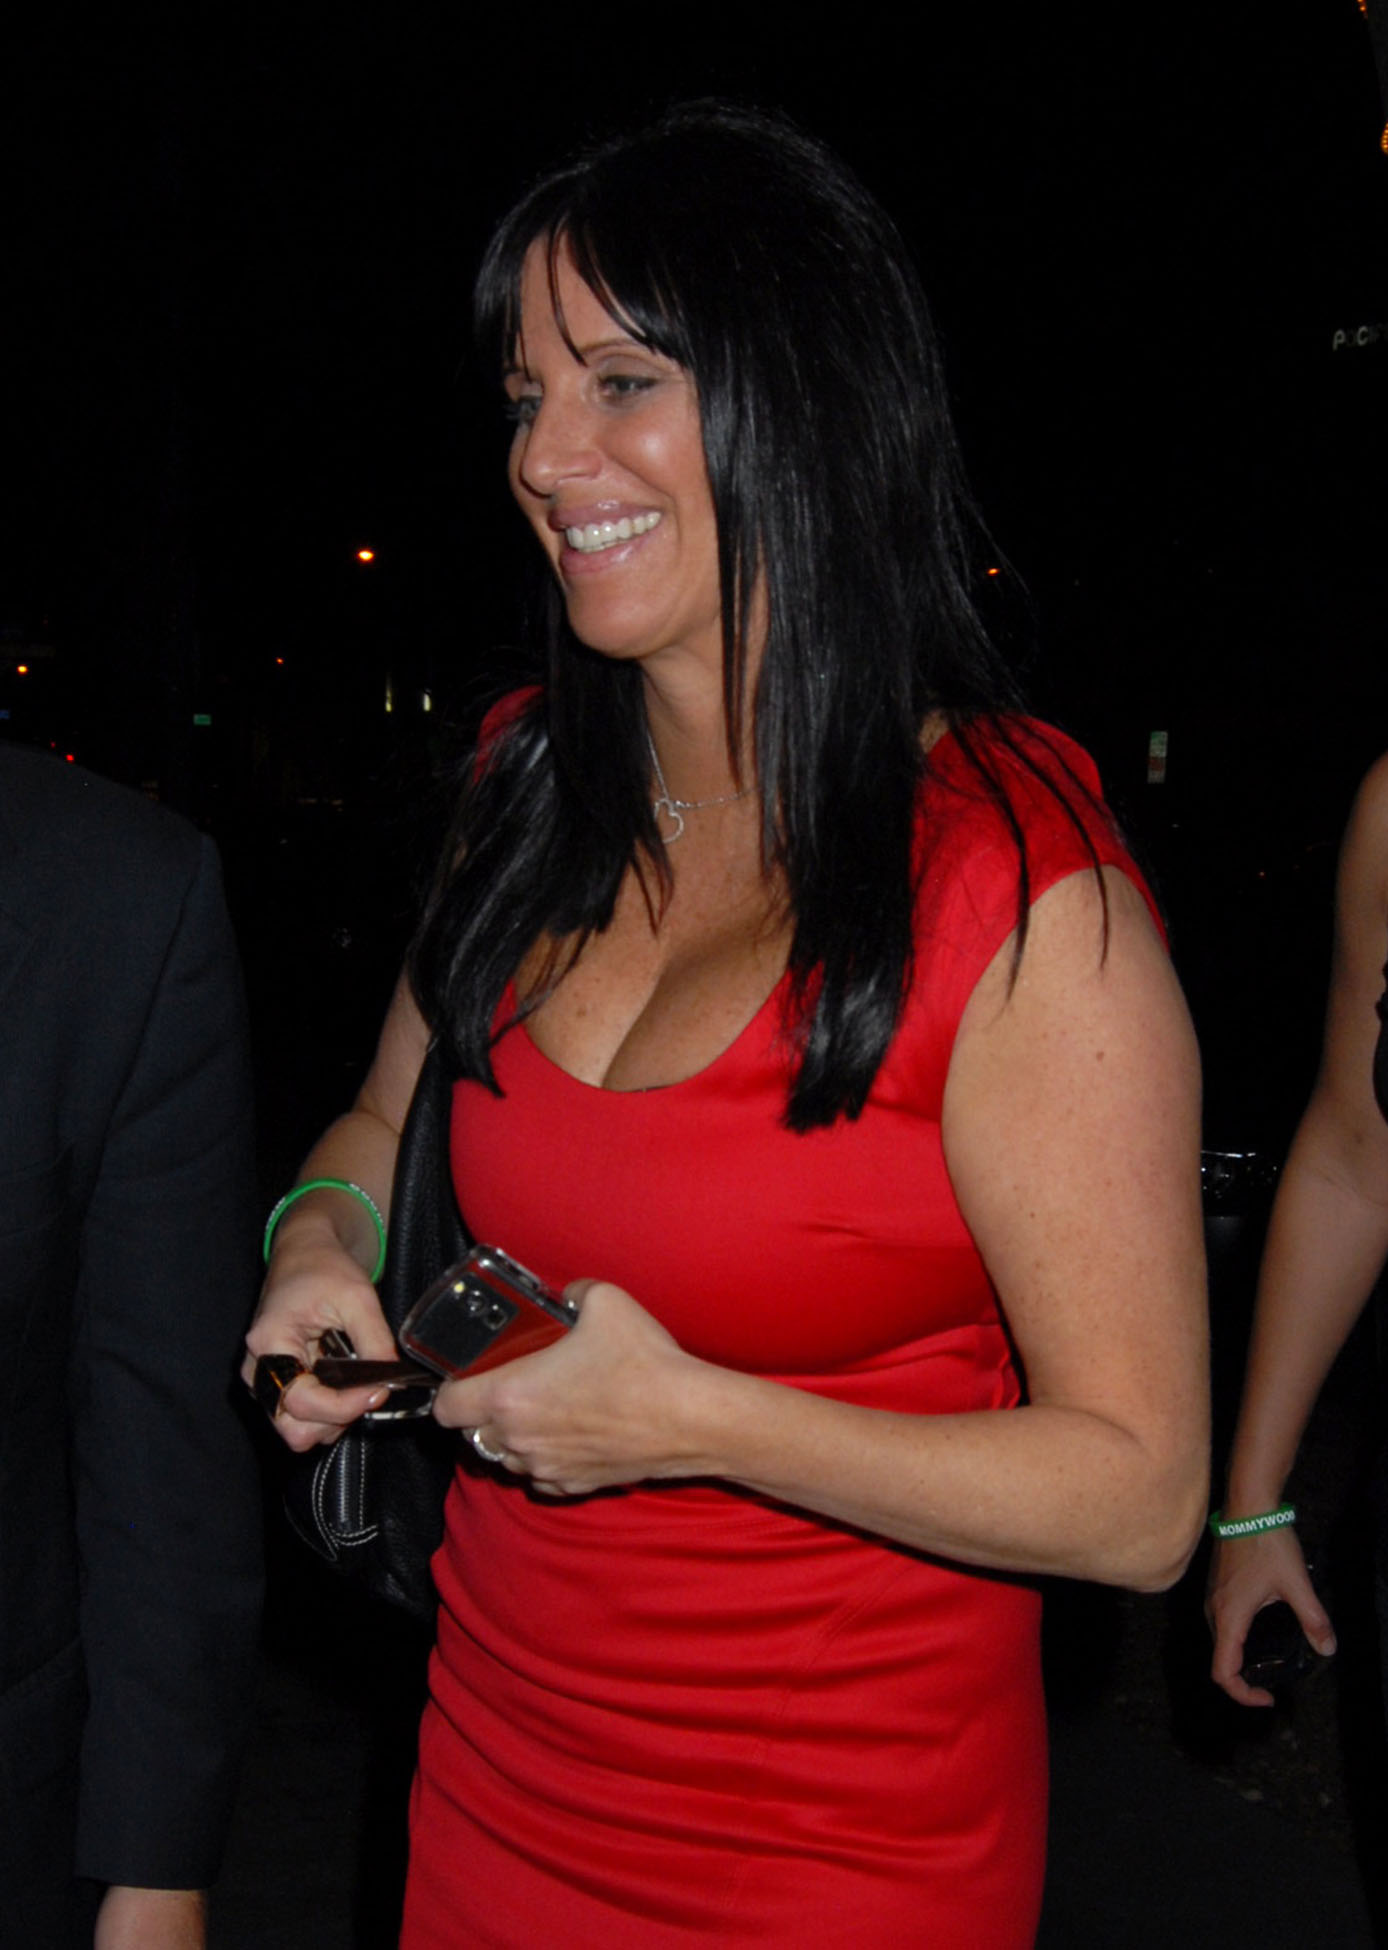 Cute Red Hearts Wallpapers Patti Stanger Red Hot Xcitefun Net